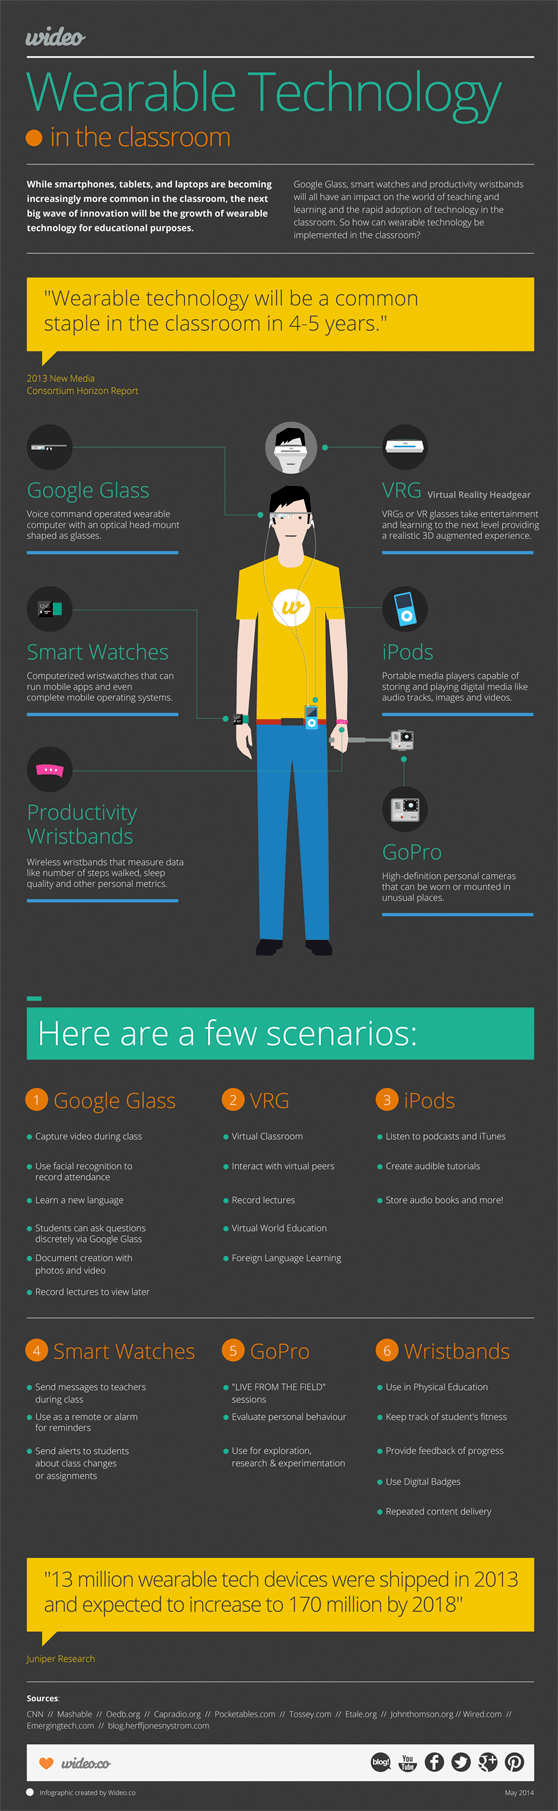 Wearable-Technology-in-the-Classroom-Infographic